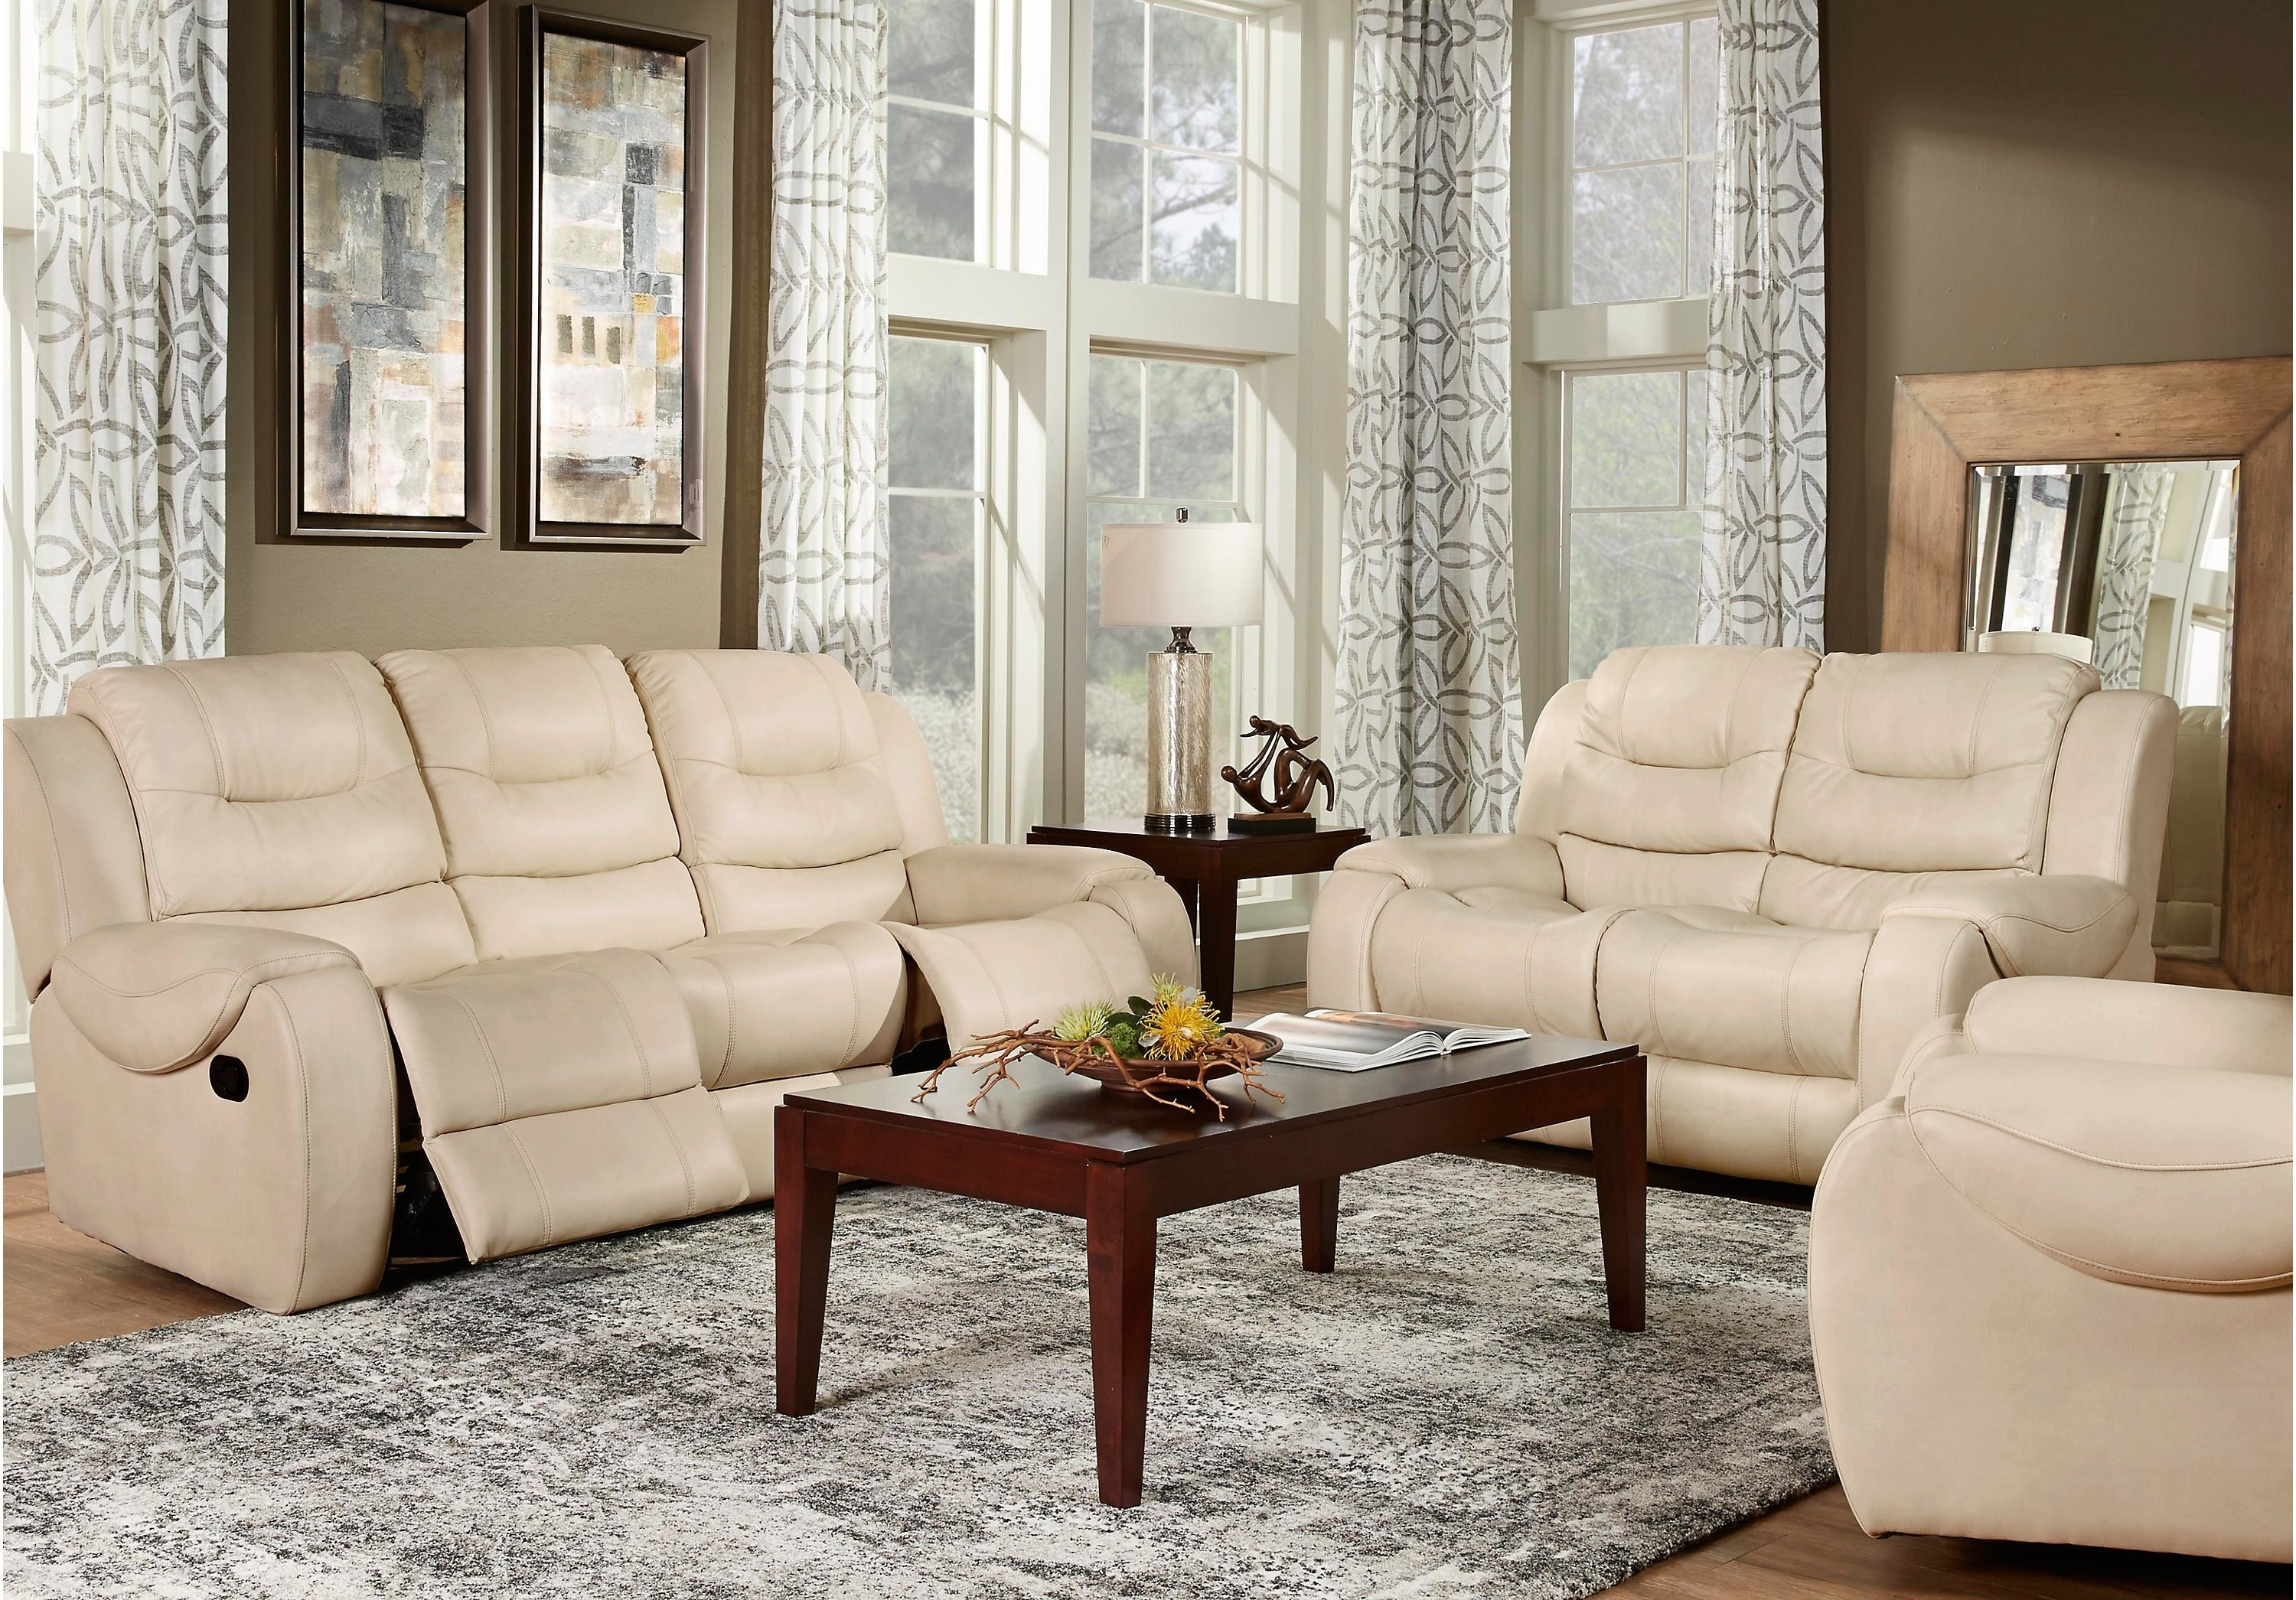 Preferred Edmonton Leather Sectional Leons Sofas Sectional Sofas Edmonton Throughout Sacramento Sectional Sofas (View 14 of 20)